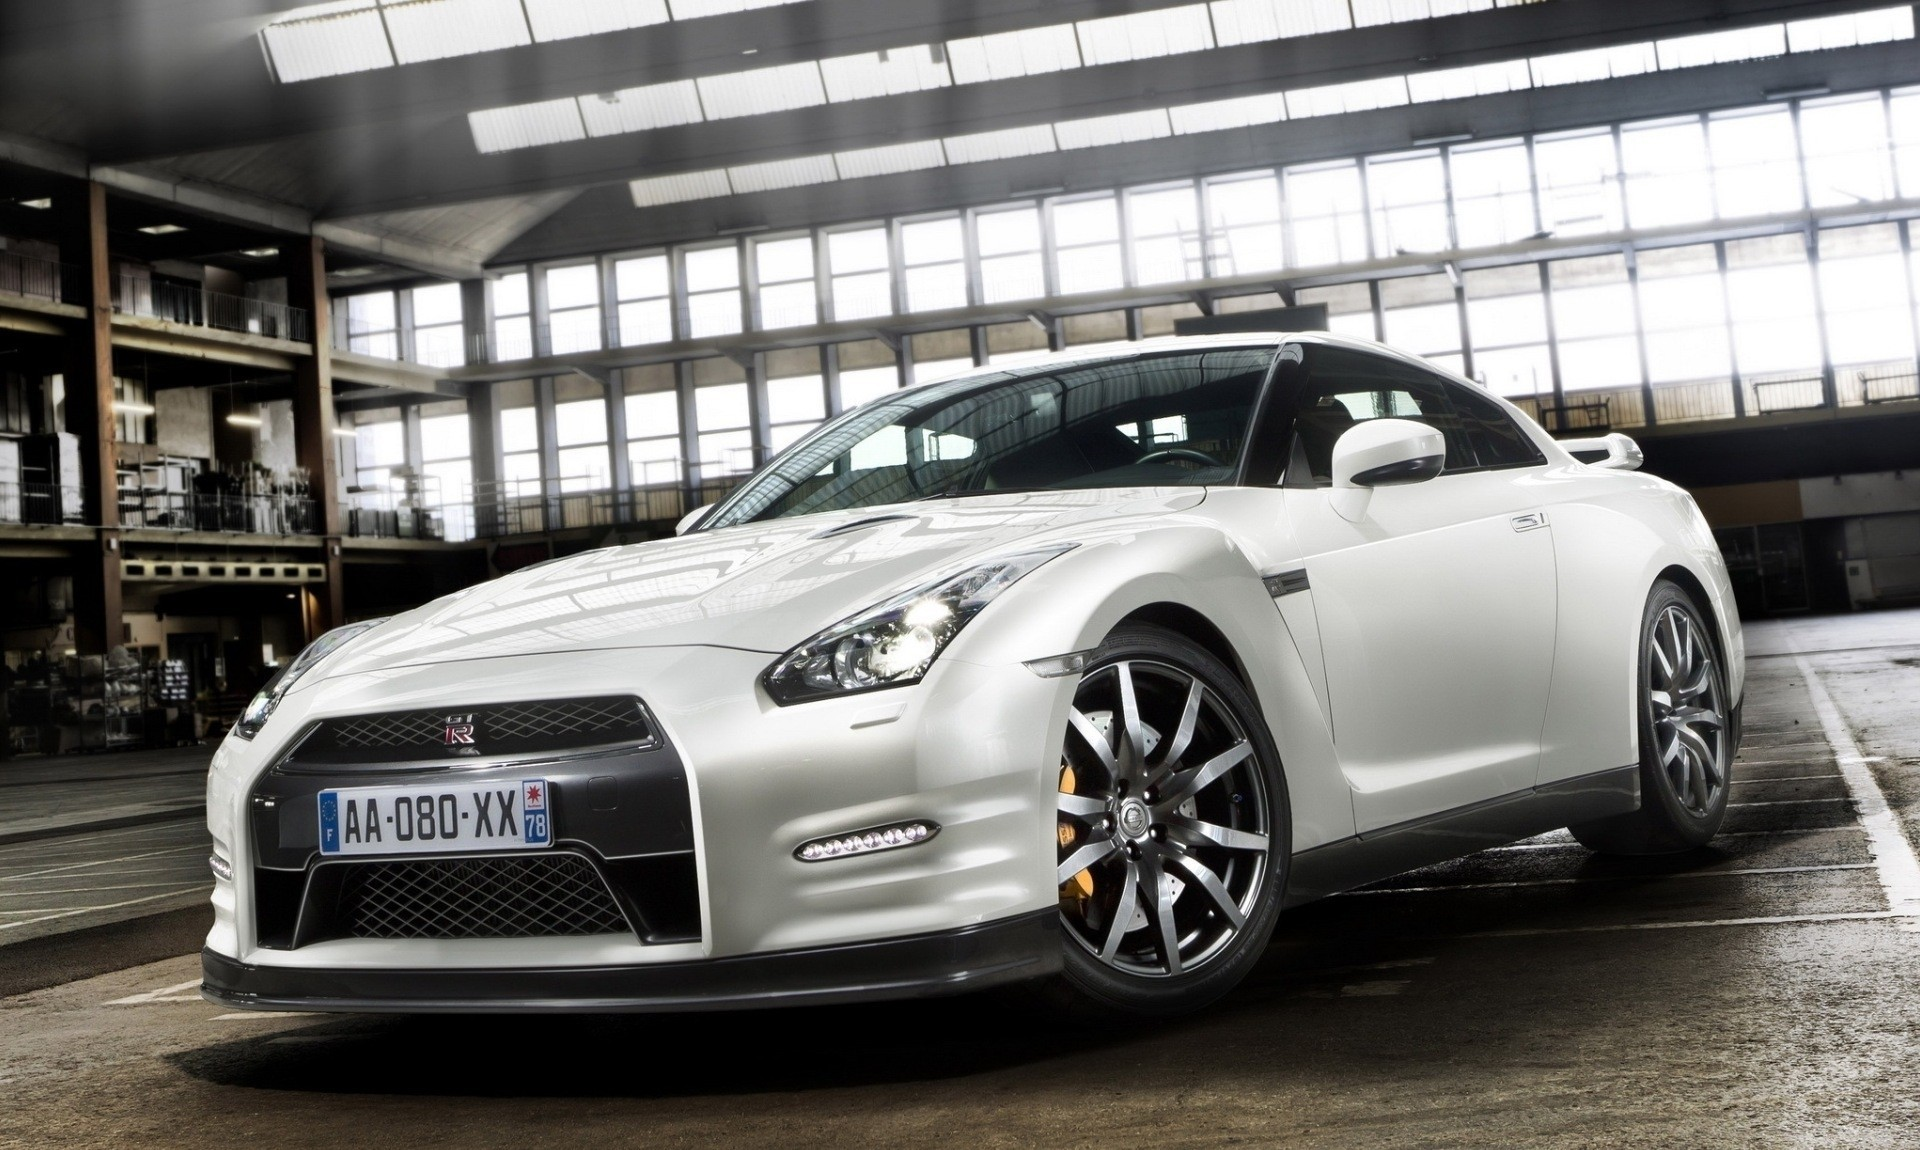 gtr nissan gtr r35 cars wallpaper 4147 pc en. Black Bedroom Furniture Sets. Home Design Ideas